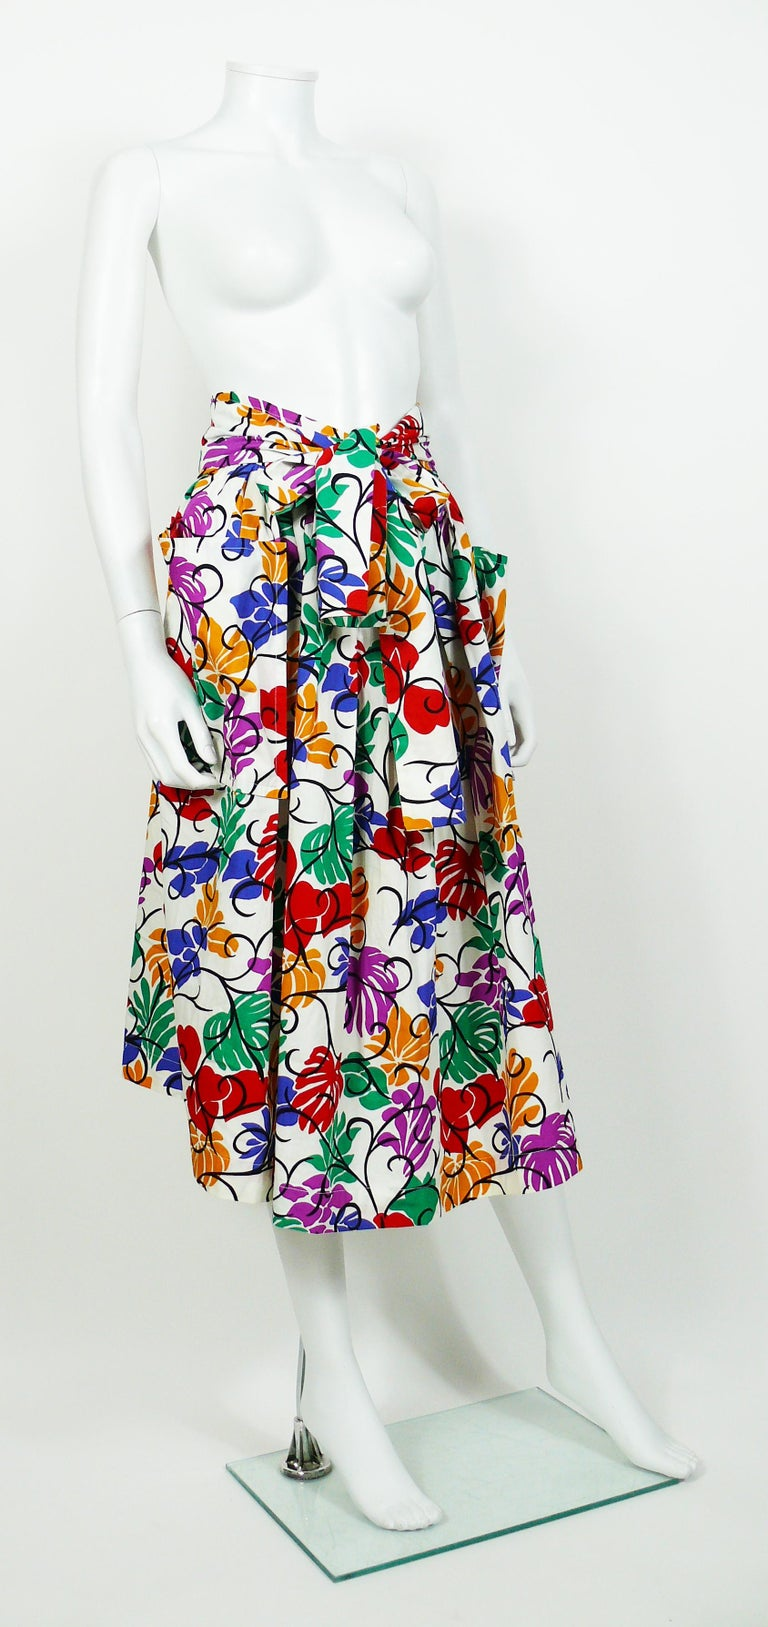 YVES SAINT LAURENT RIVE GAUCHE vintage skirt featuring a multicolored floral and heart print inspired by the cut-out artworks of HENRI MATISSE.  This skirt features : - White cotton fabric with a bold multicolored all over opulent print. -